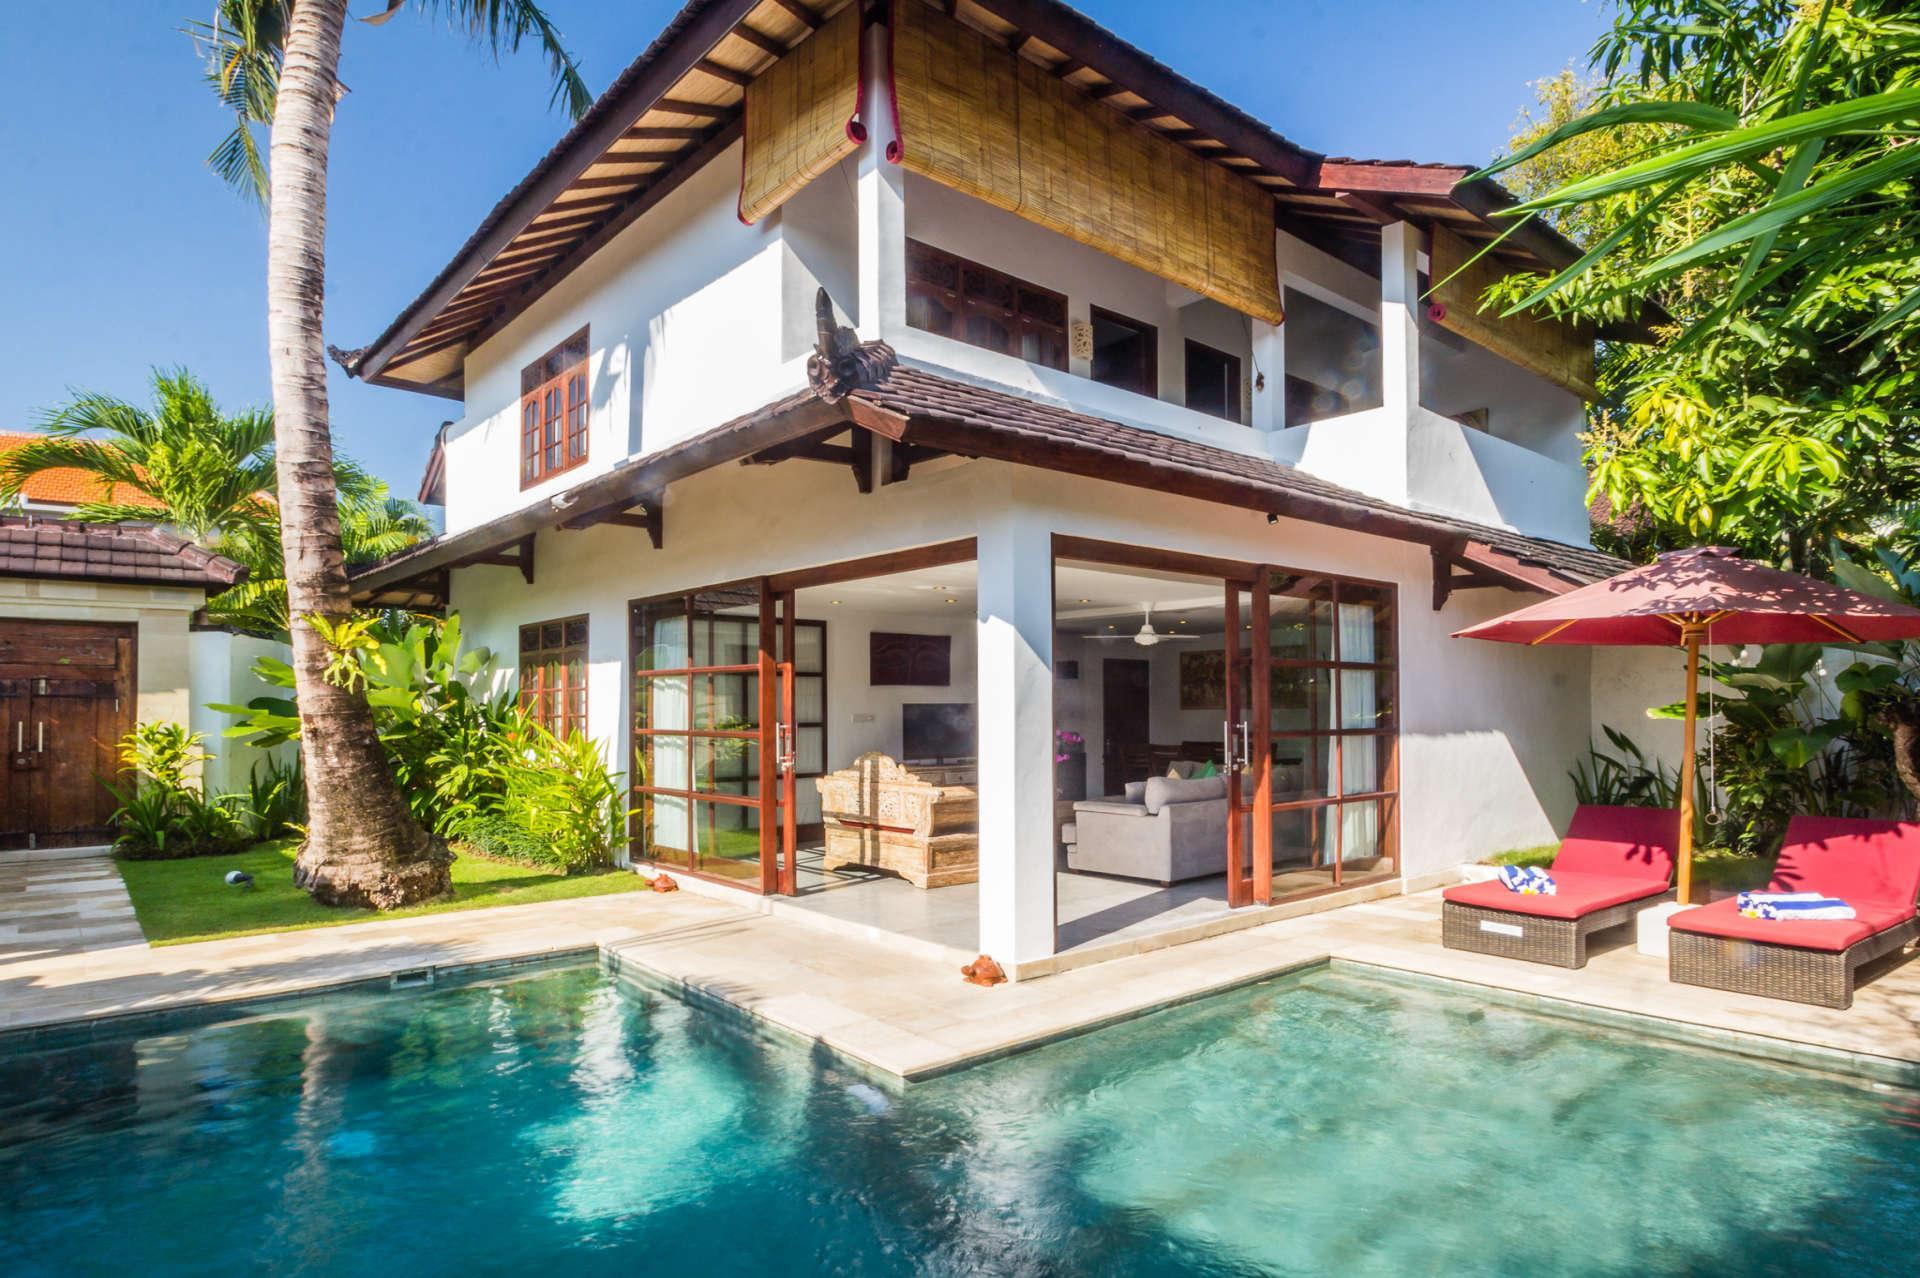 Enjoy A Holiday Of A Lifetime Renting Your Own 5 Star Private Villa At The Best Rate In Seminyak